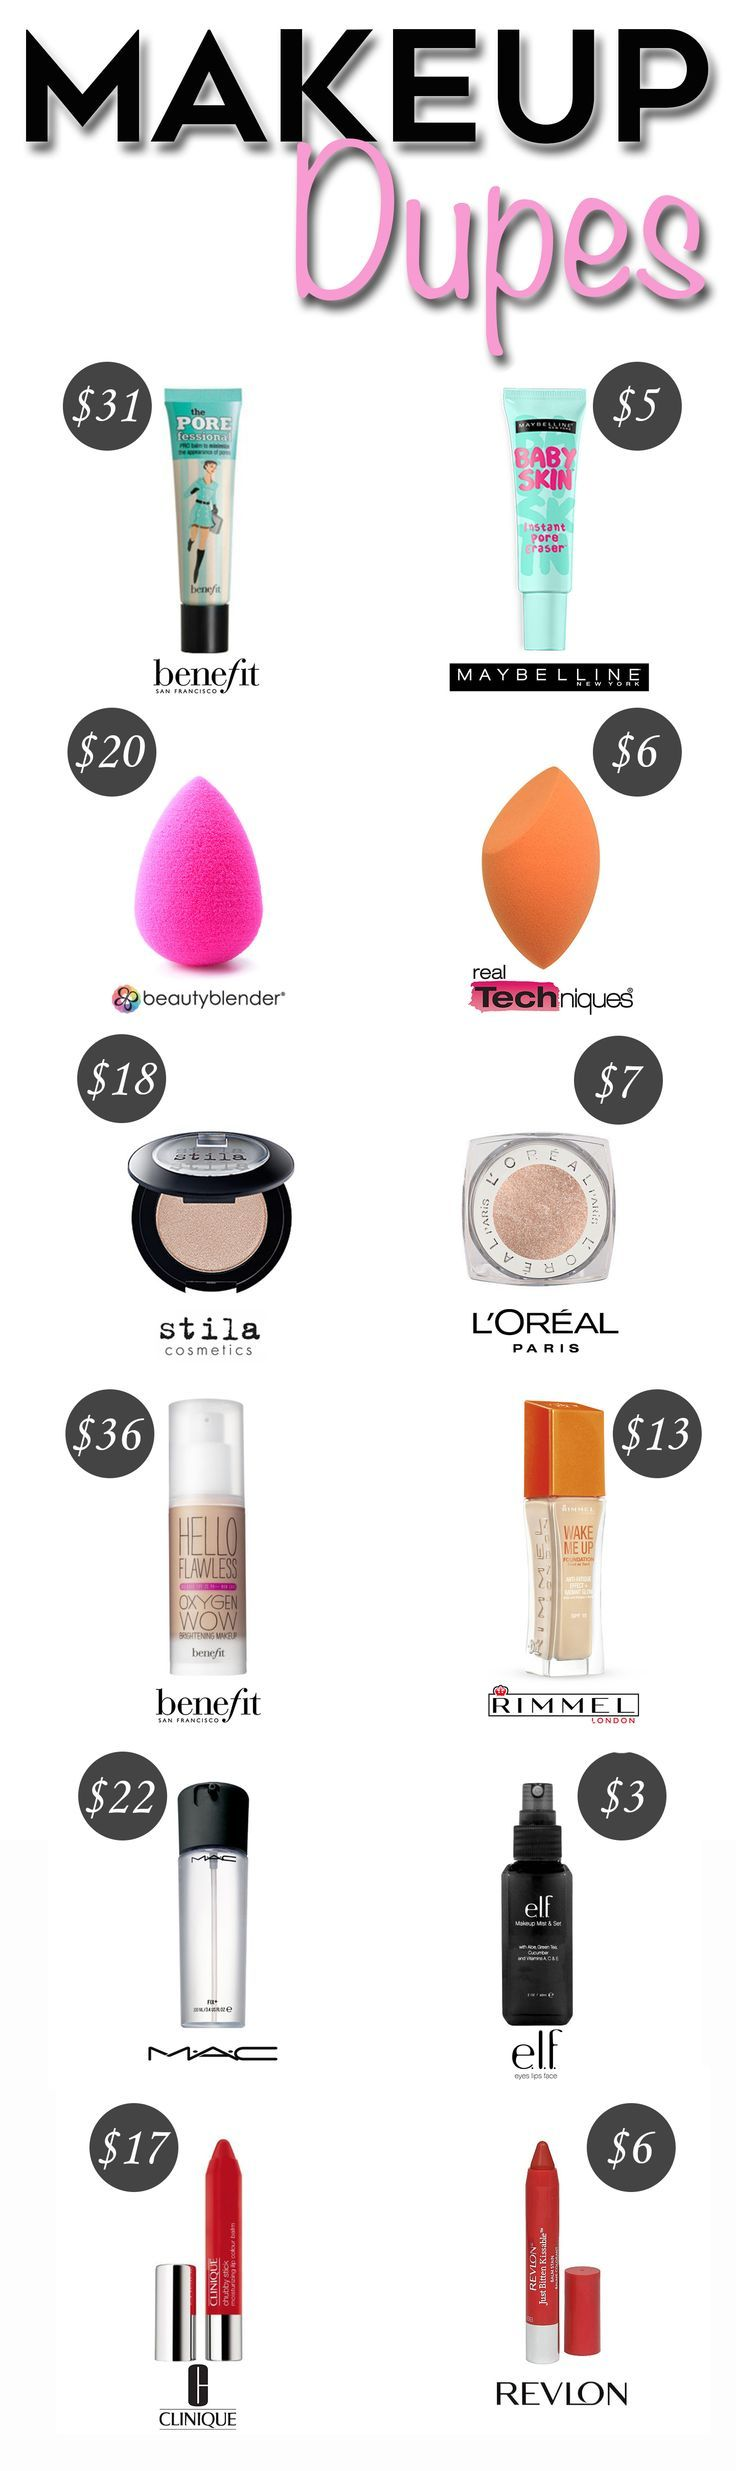 Save money with basically the same products